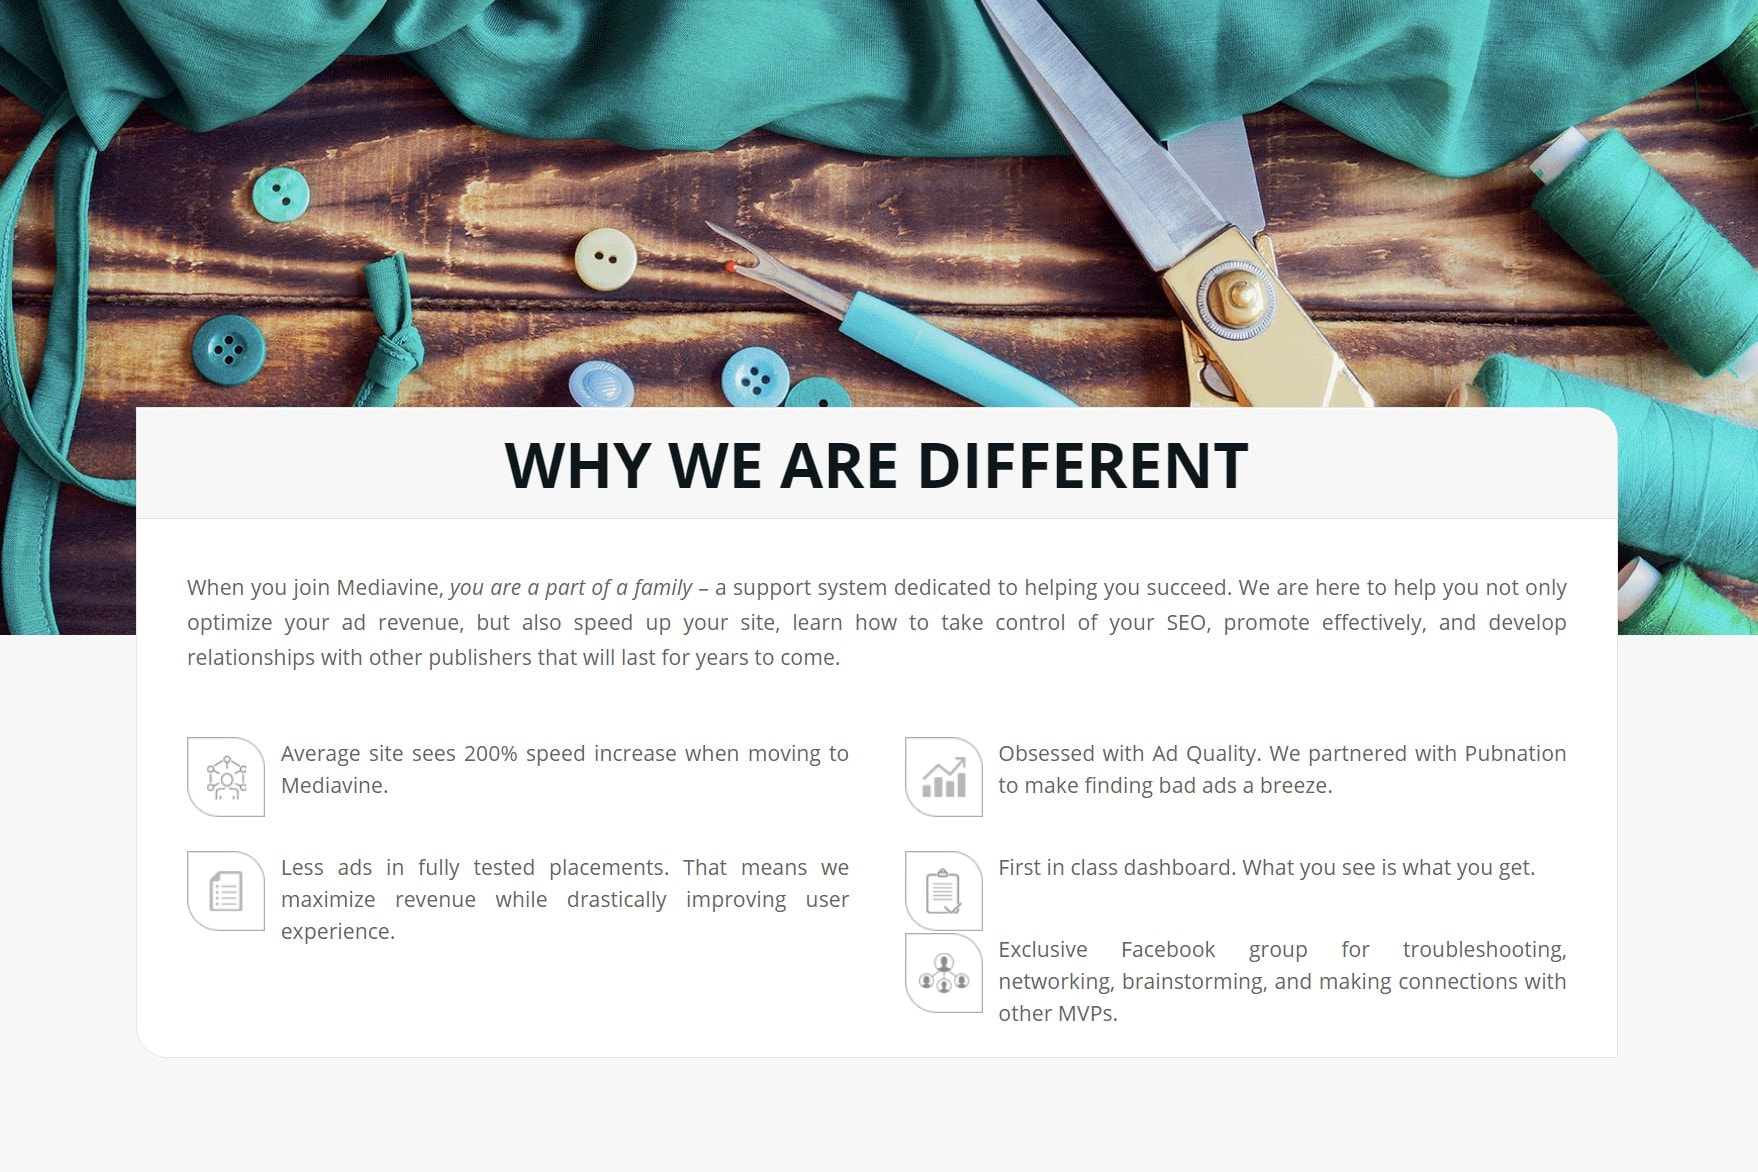 Screengrab from Mediavine 'Welcome to Mediavine' page, 'Why We are Different' section